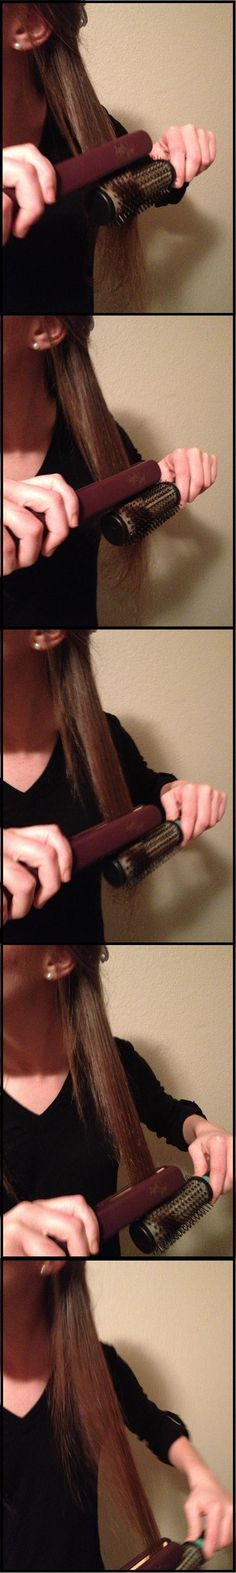 Guiding hair with a brush while you straighten can help you avoid monstrous split ends